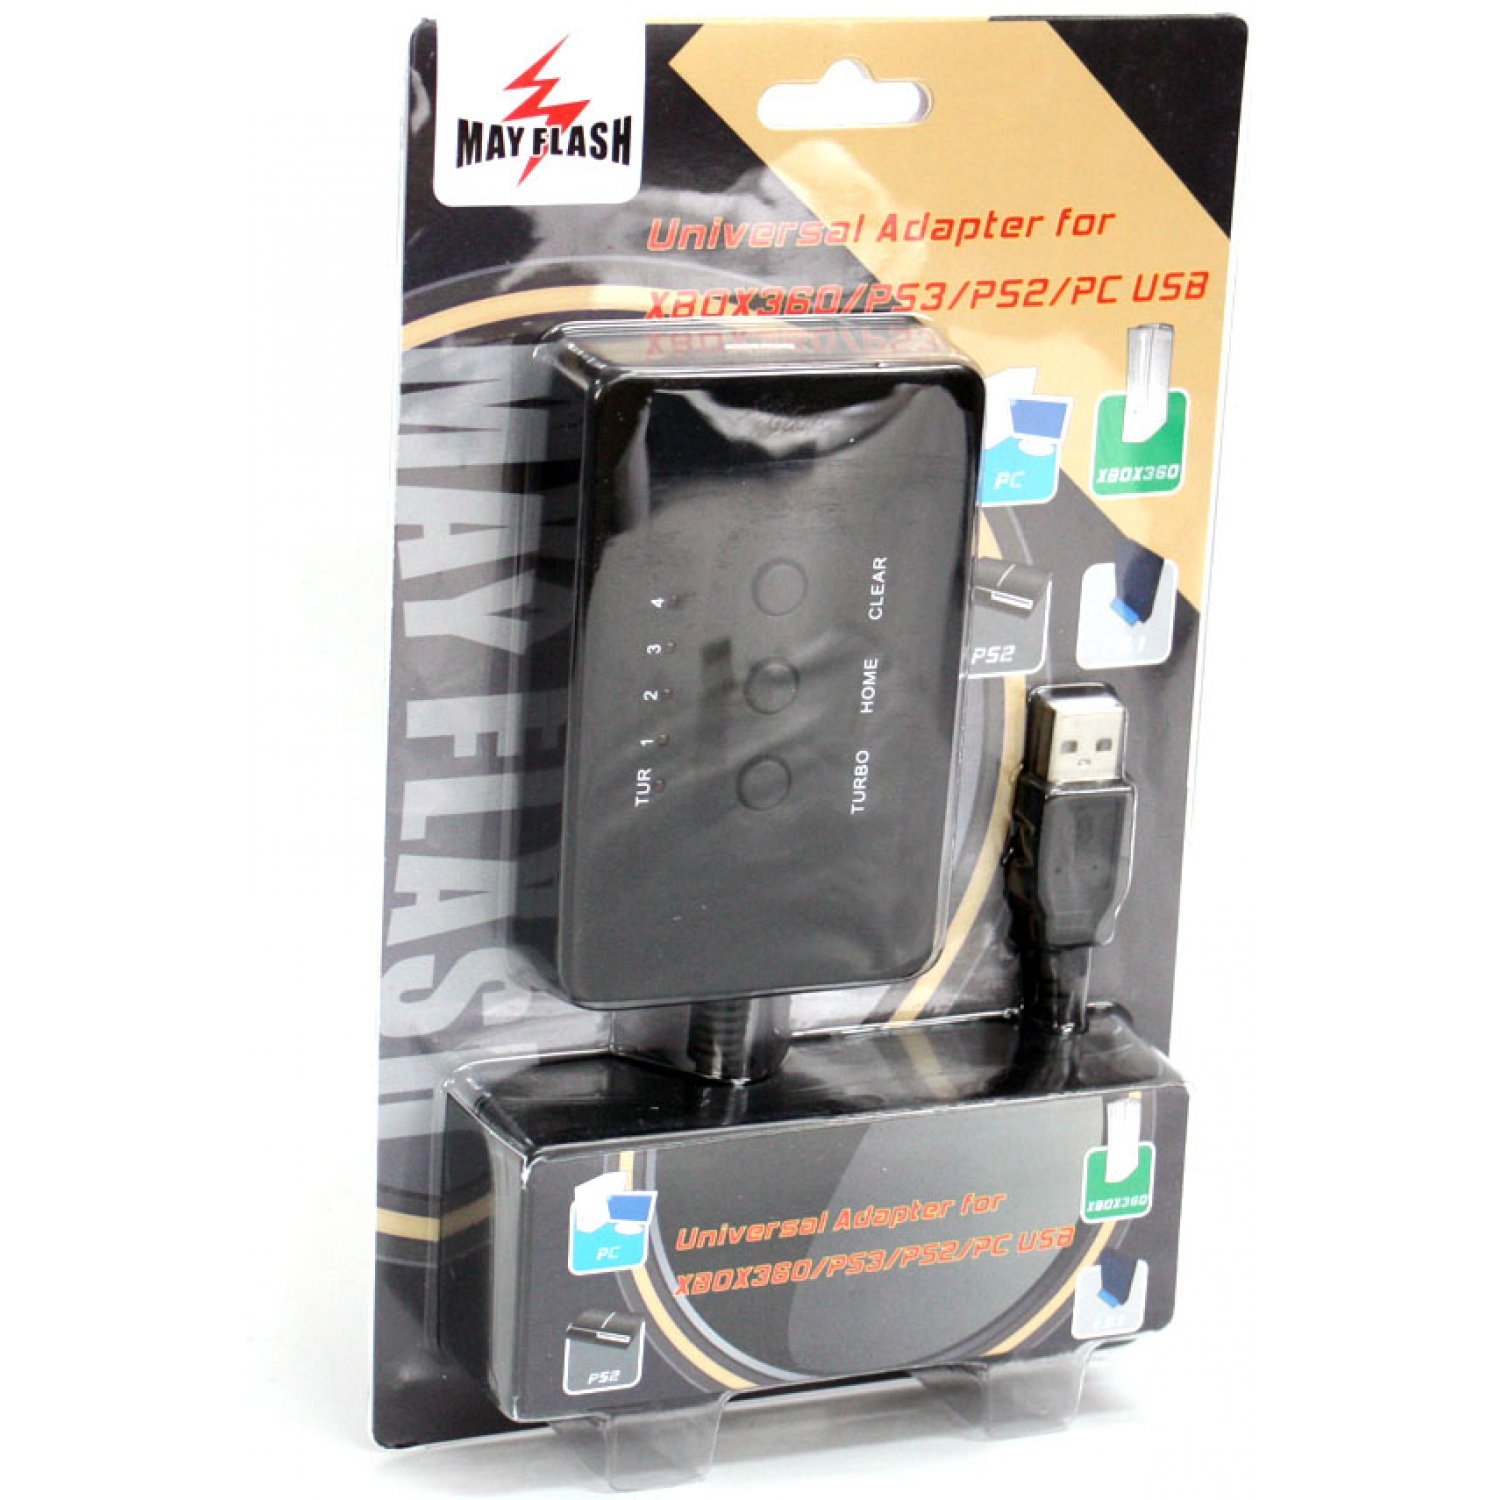 Universal Game Controller Adapter for use with PC & NextGen